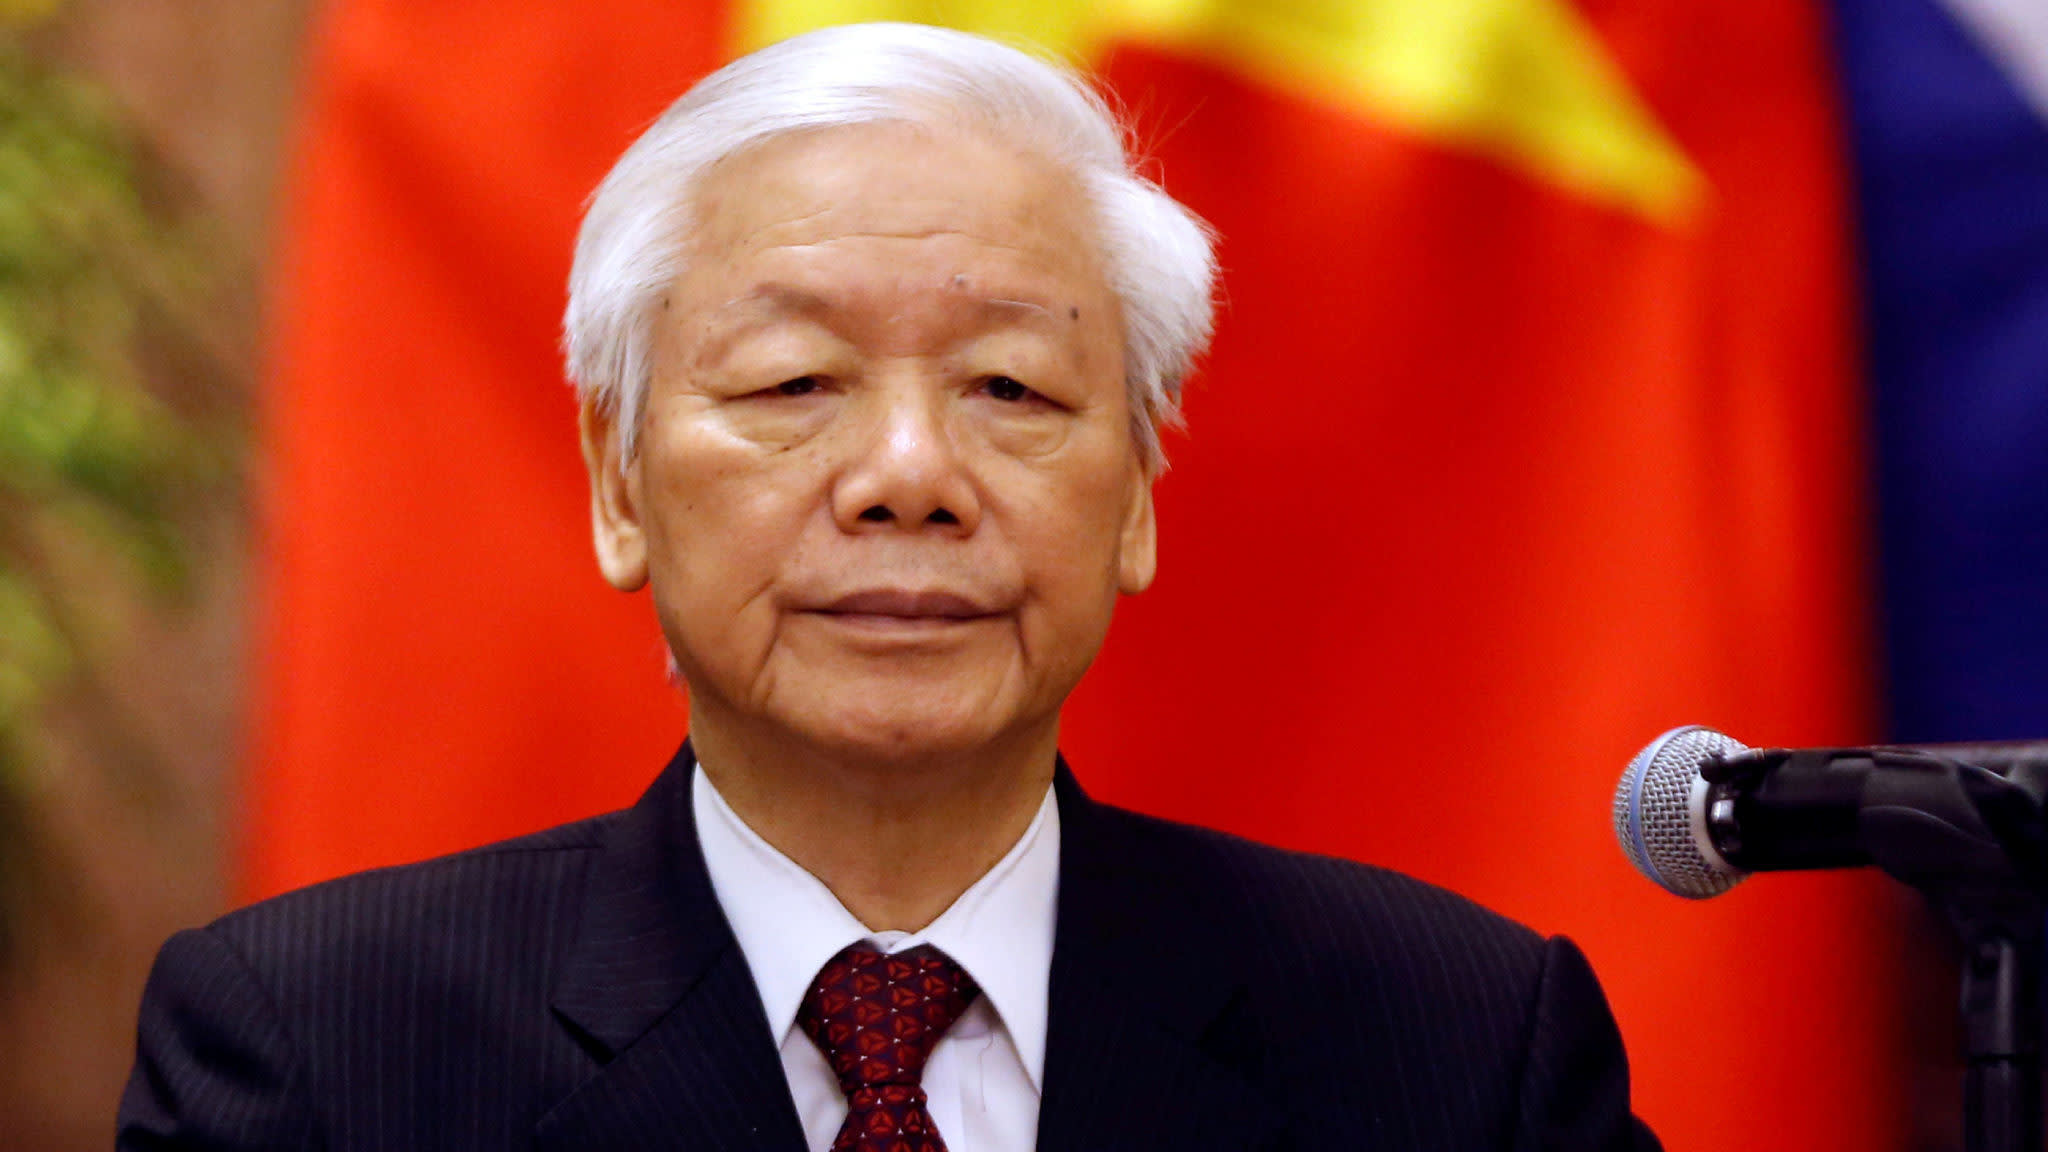 Vietnamese president ill, government says | Financial Times